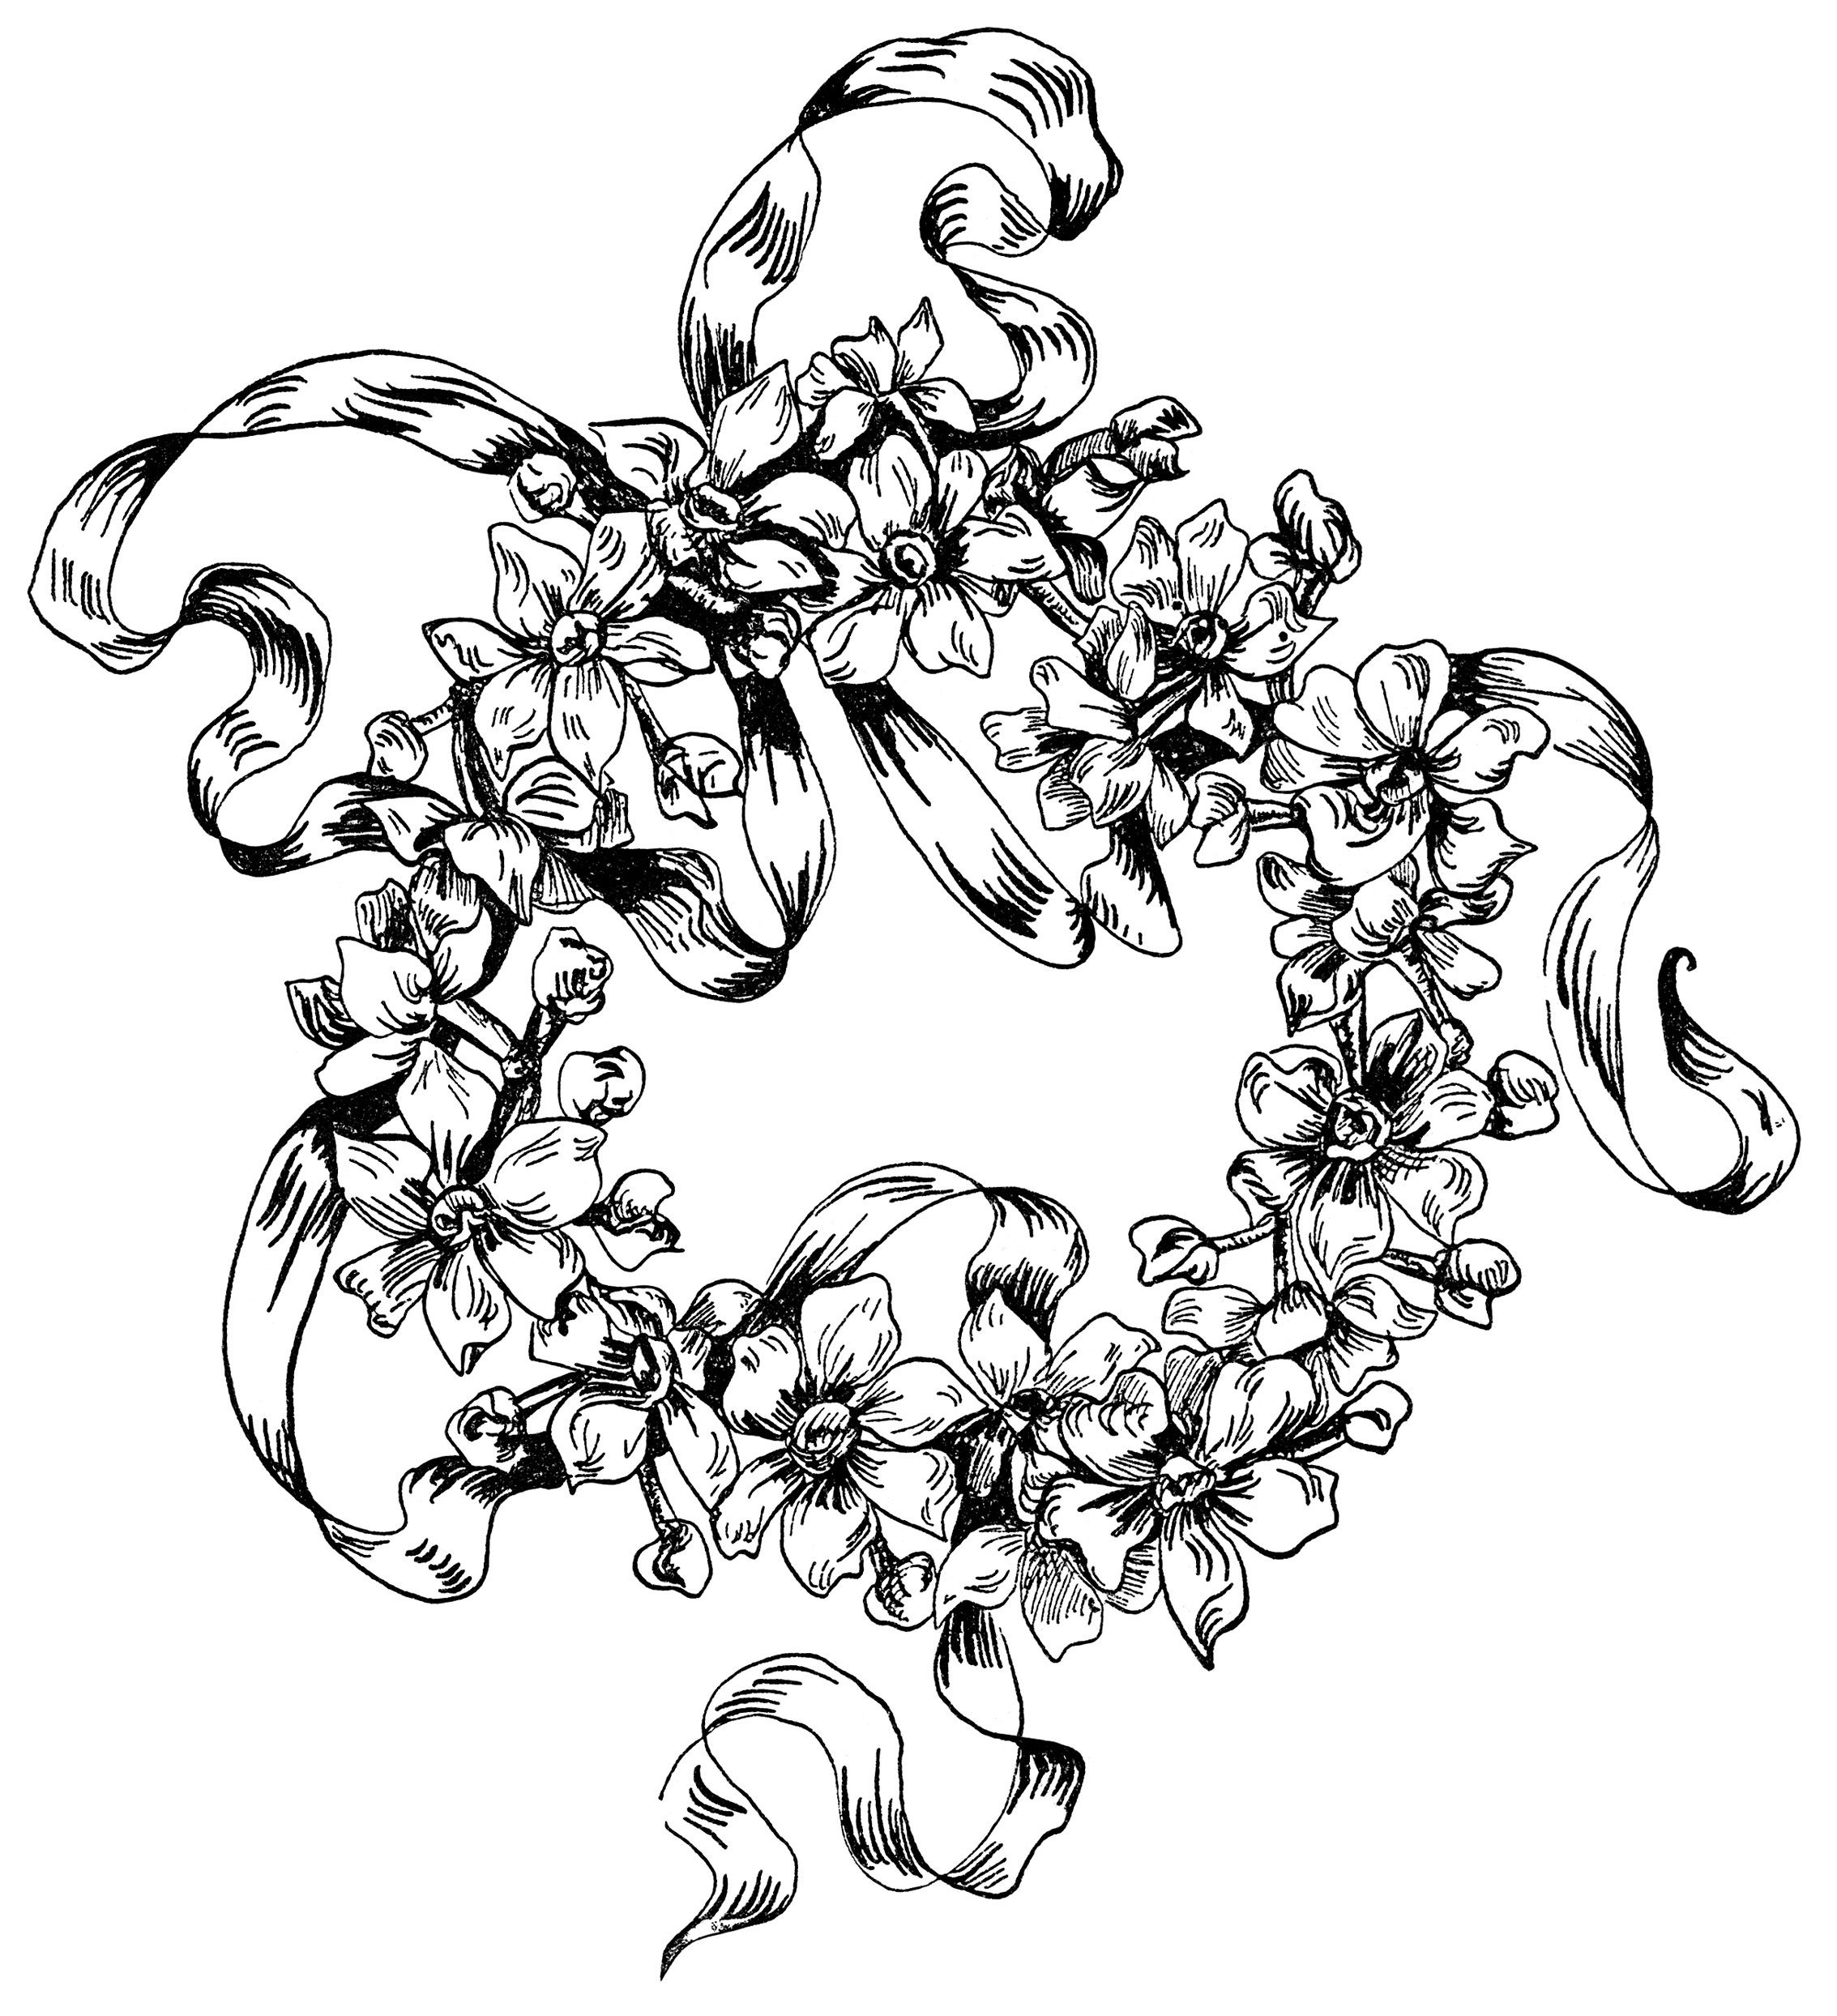 flower design illustration, black and white clipart